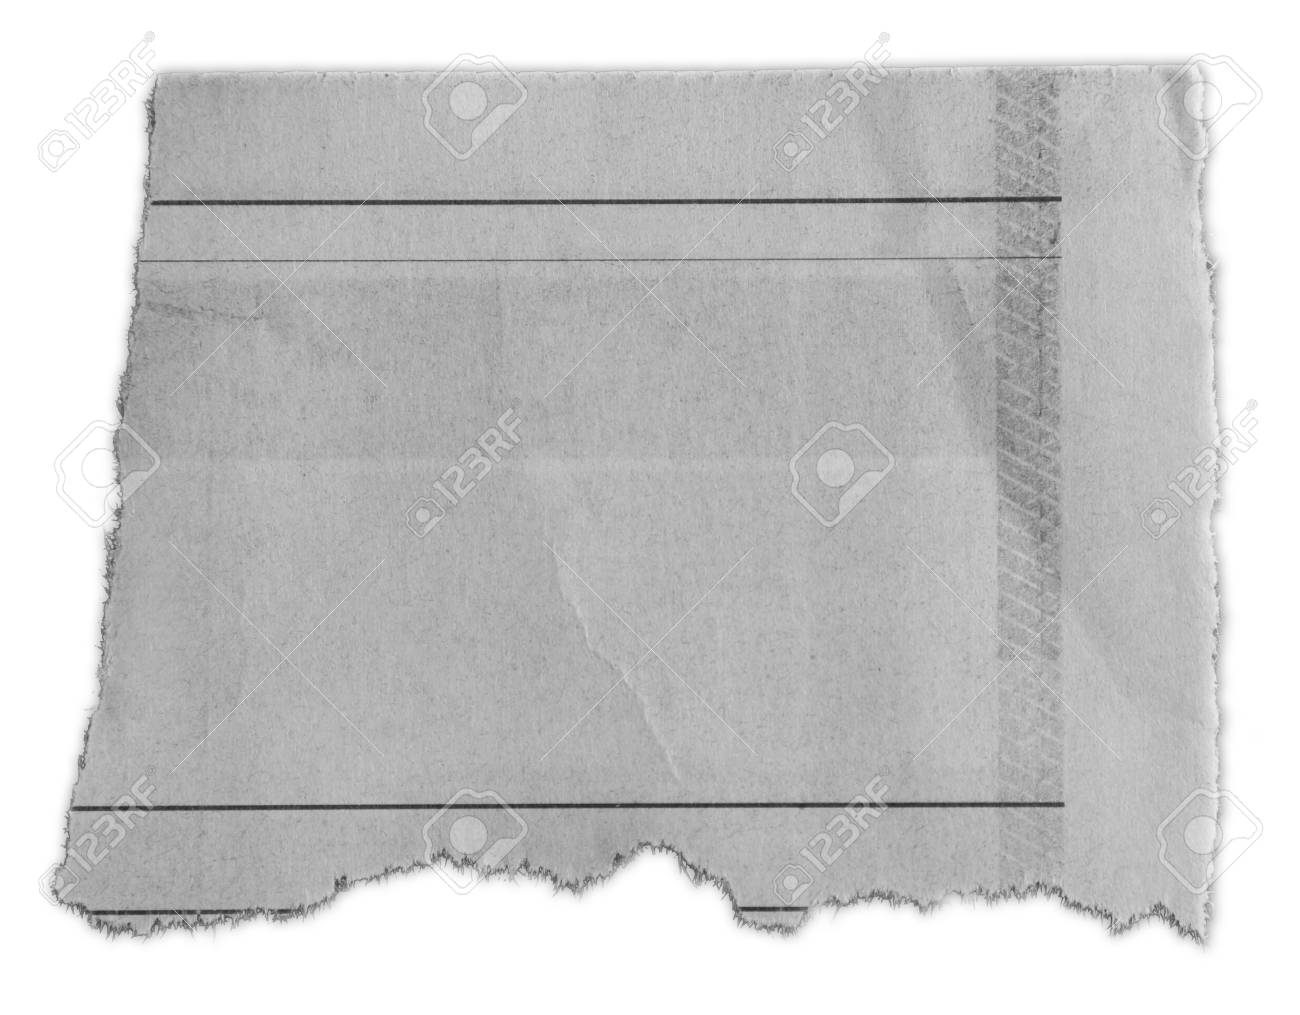 Piece of torn paper isolated on plain background - 120314995